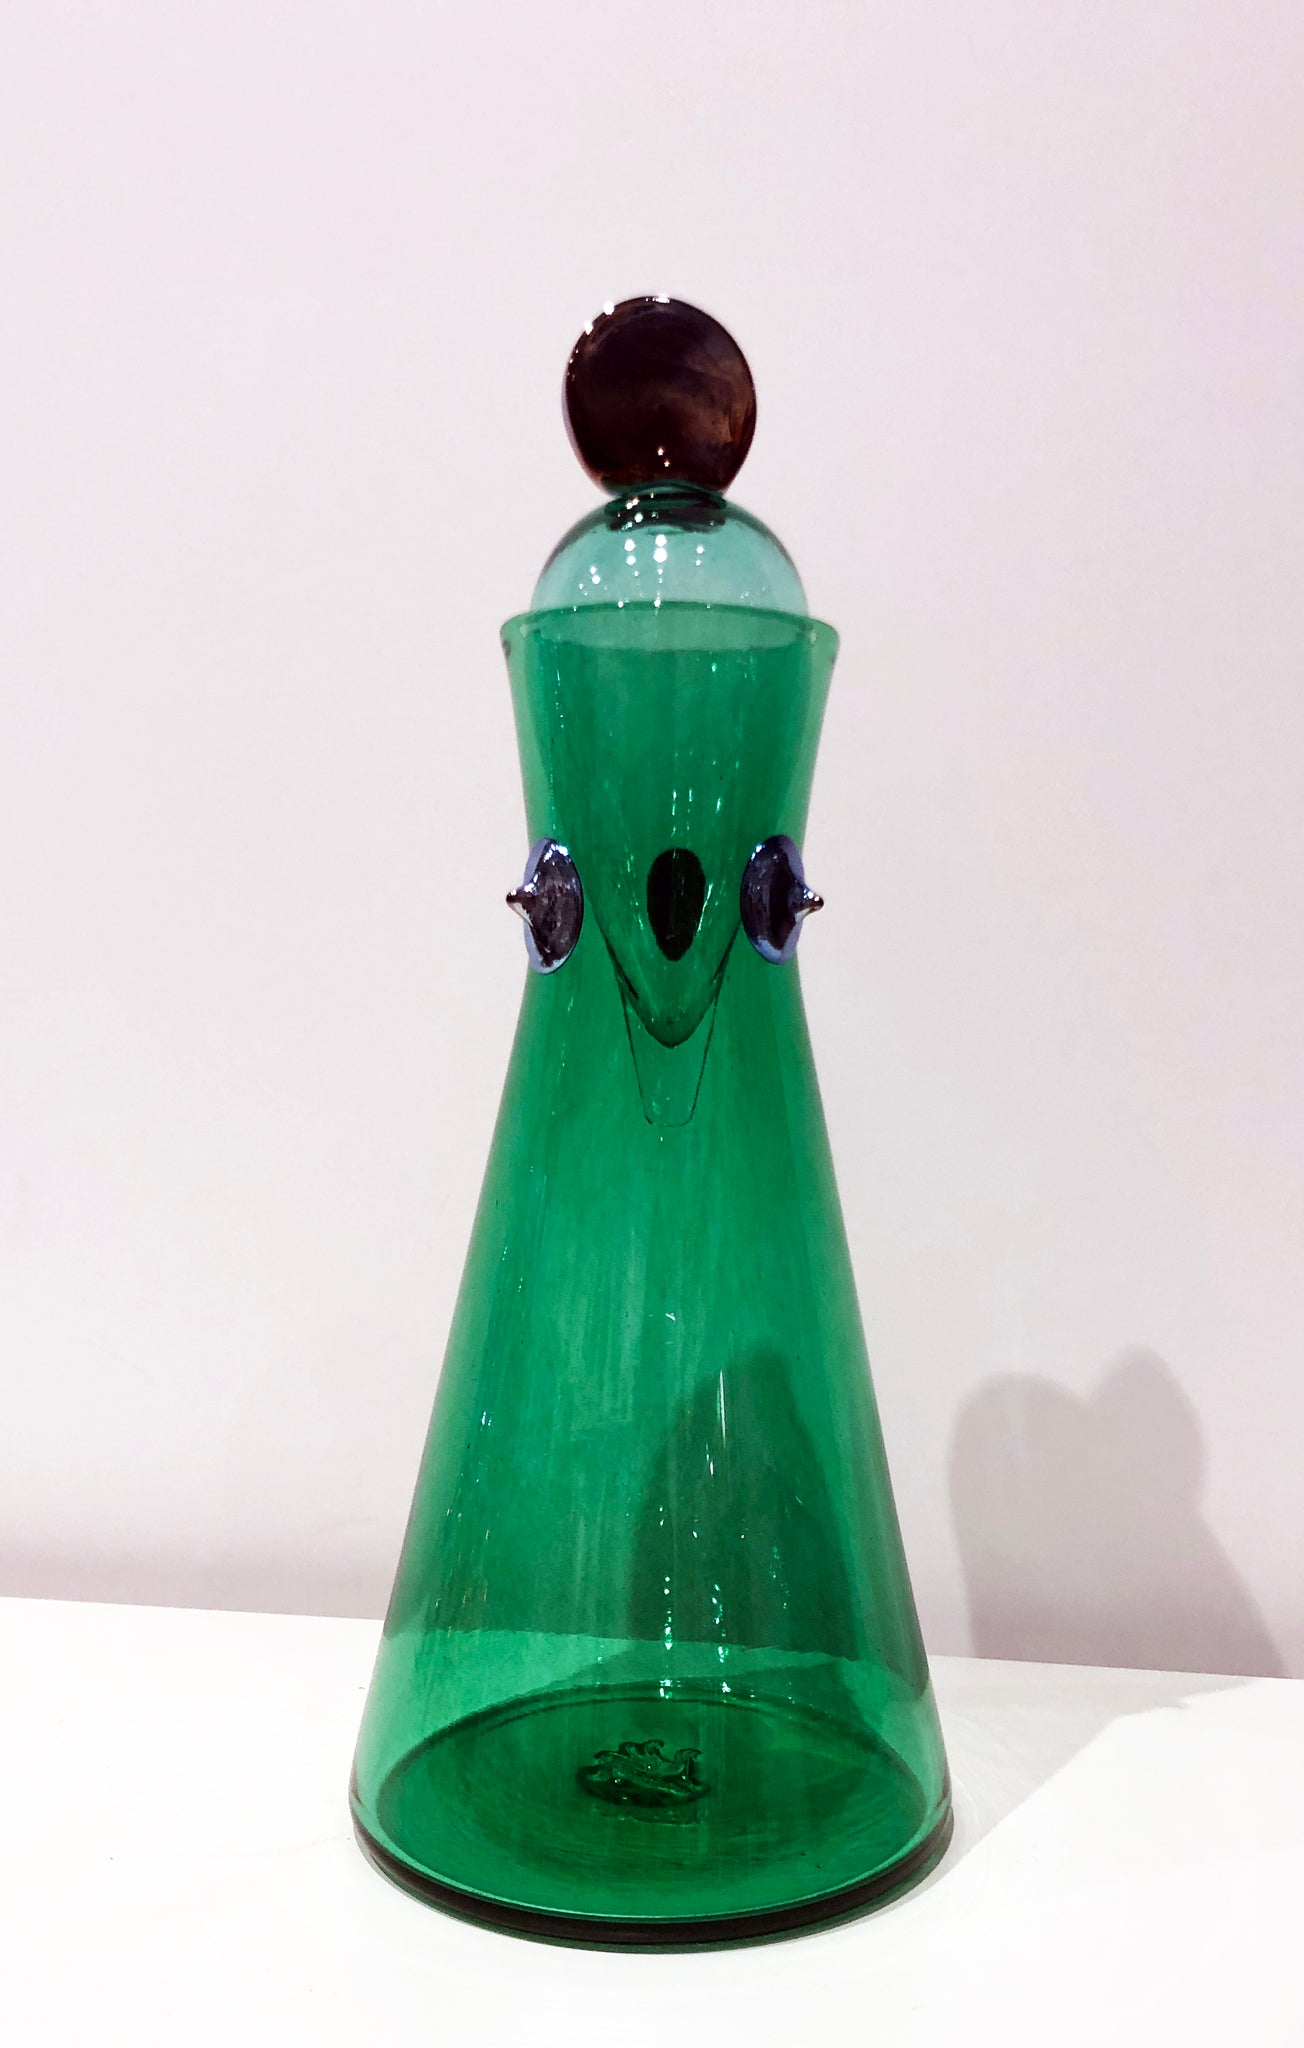 Carafe with Teardrop Stopper in Green - The Brant Foundation Shop